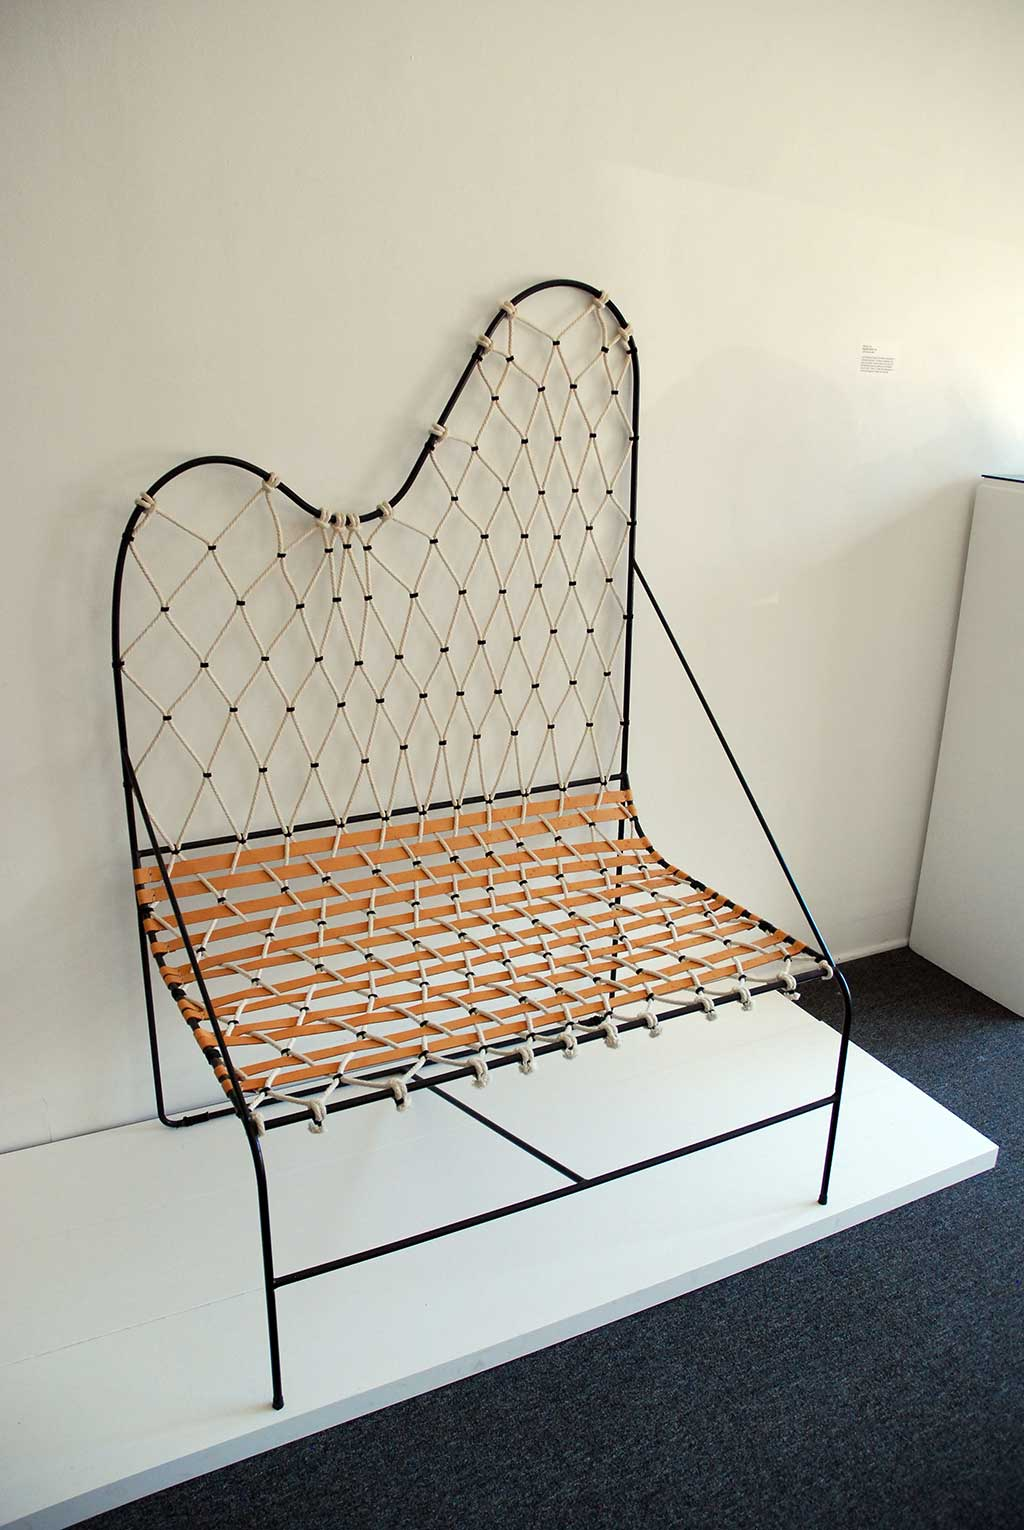 Tanya Aguiñiga, Round Hammock Settee, 2012. Steel rod, leather, cotton rope